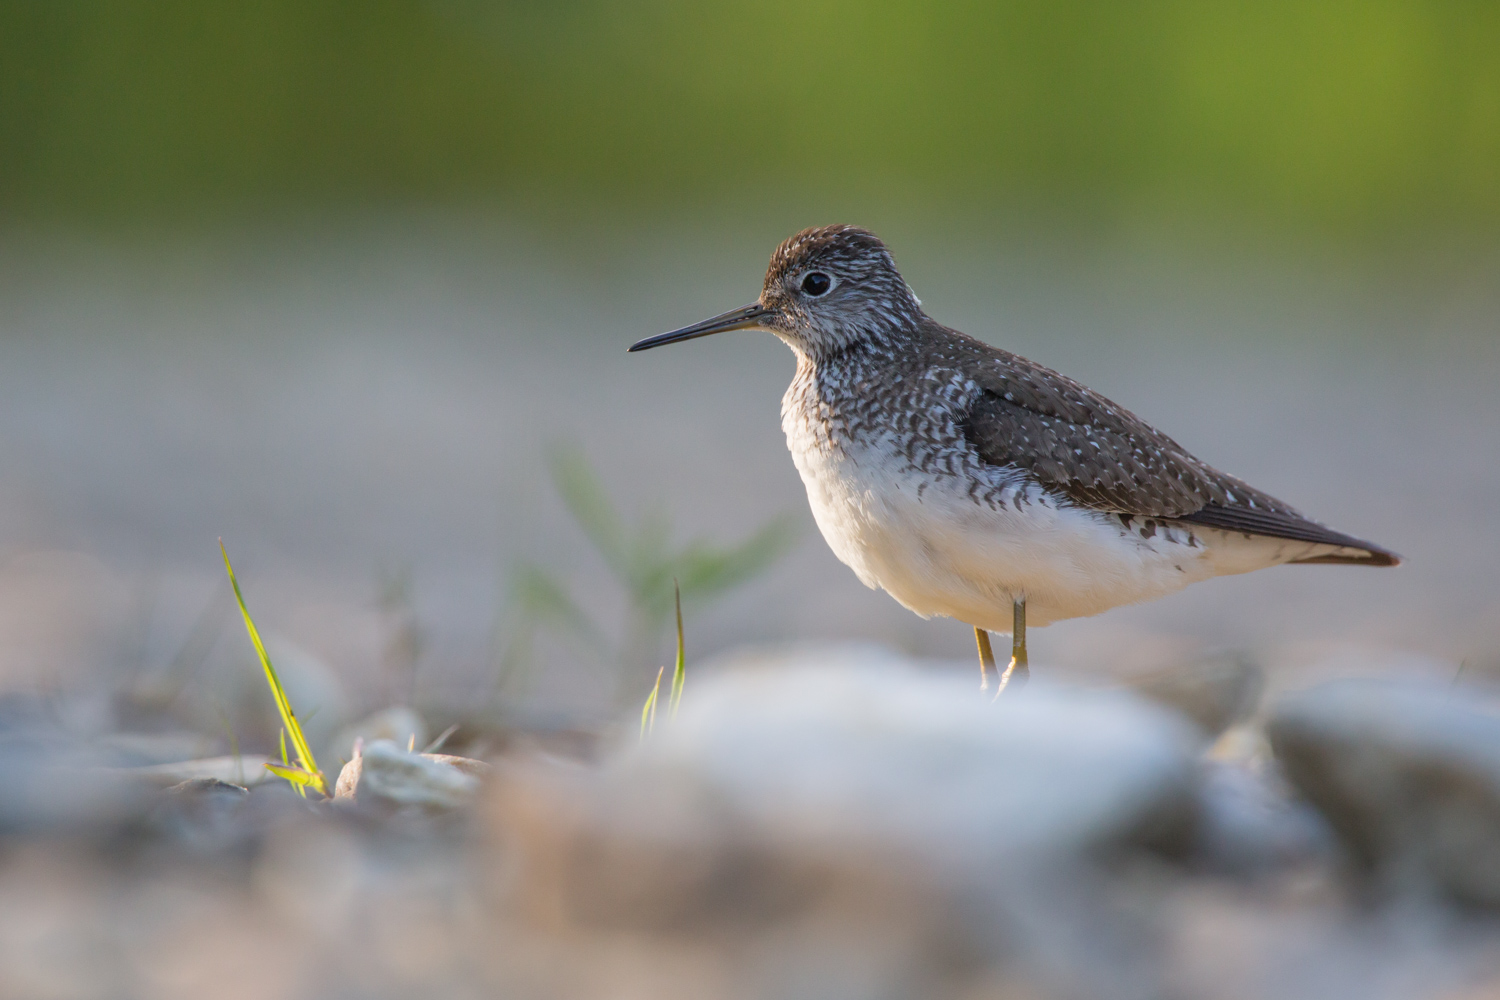 A Guide to Photographing Birds and Wildlife in a Wetland Area - bird with long beak